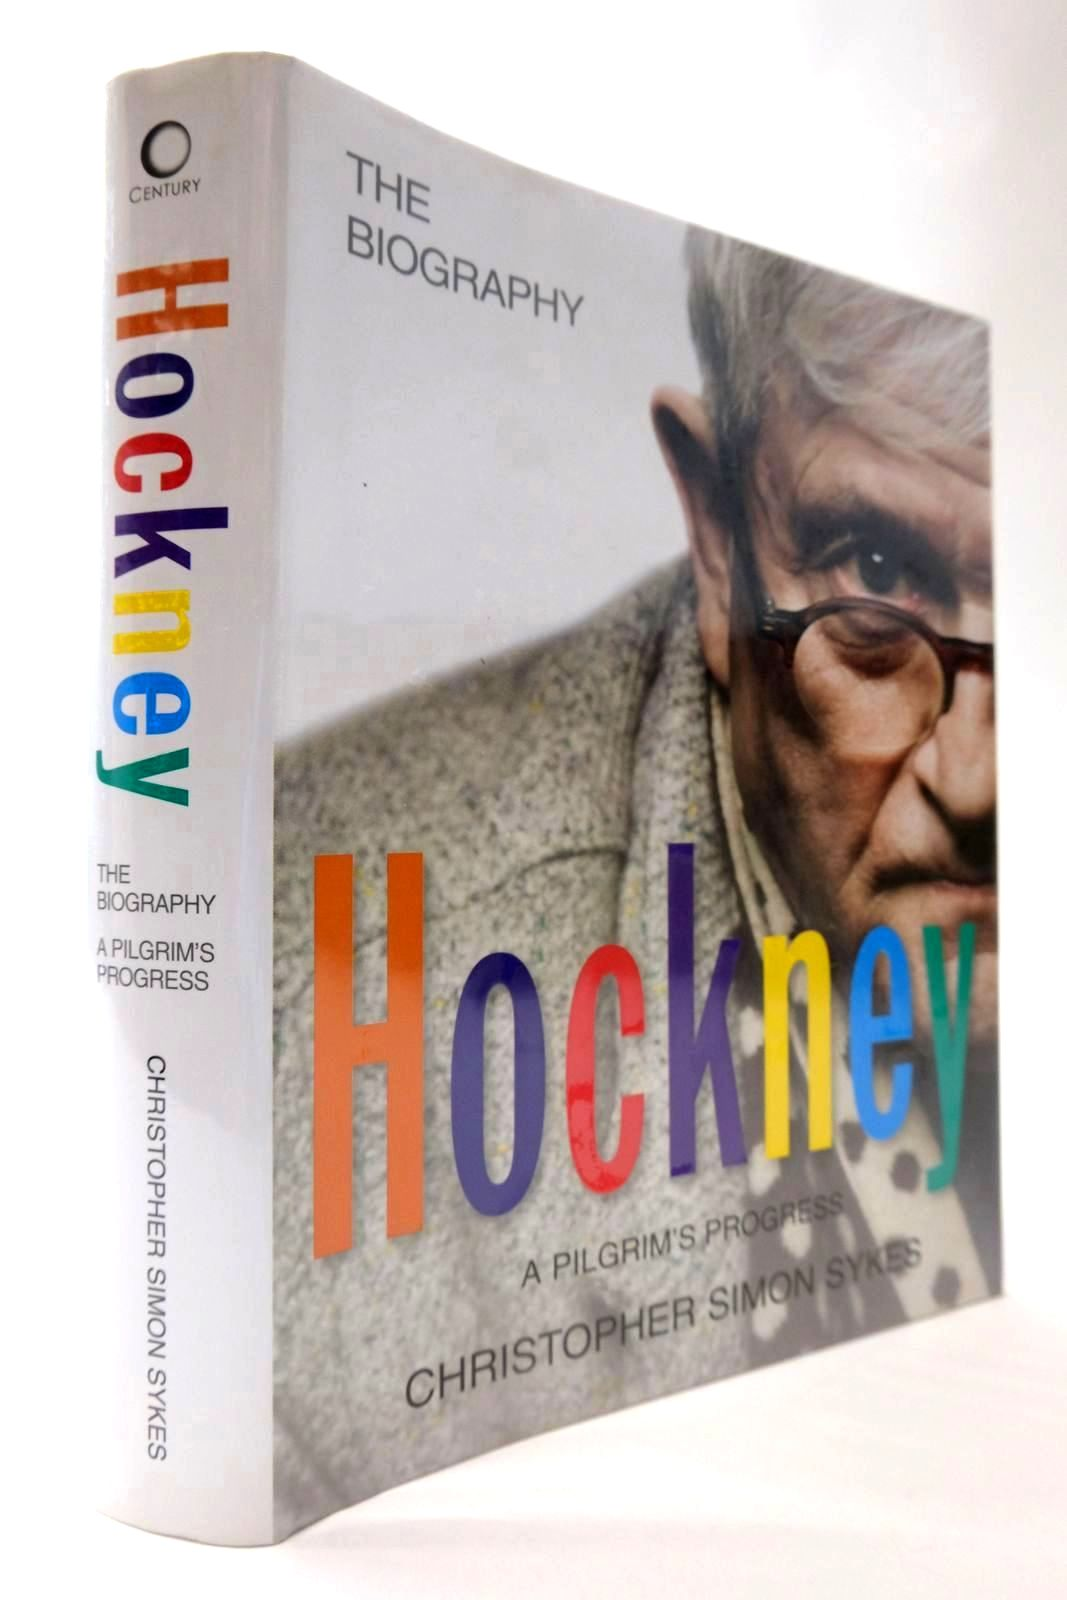 Photo of HOCKNEY: THE BIOGRAPHY VOLUME2 1975-2012 written by Sykes, Christopher Simon illustrated by Hockney, David published by Century (STOCK CODE: 2133998)  for sale by Stella & Rose's Books